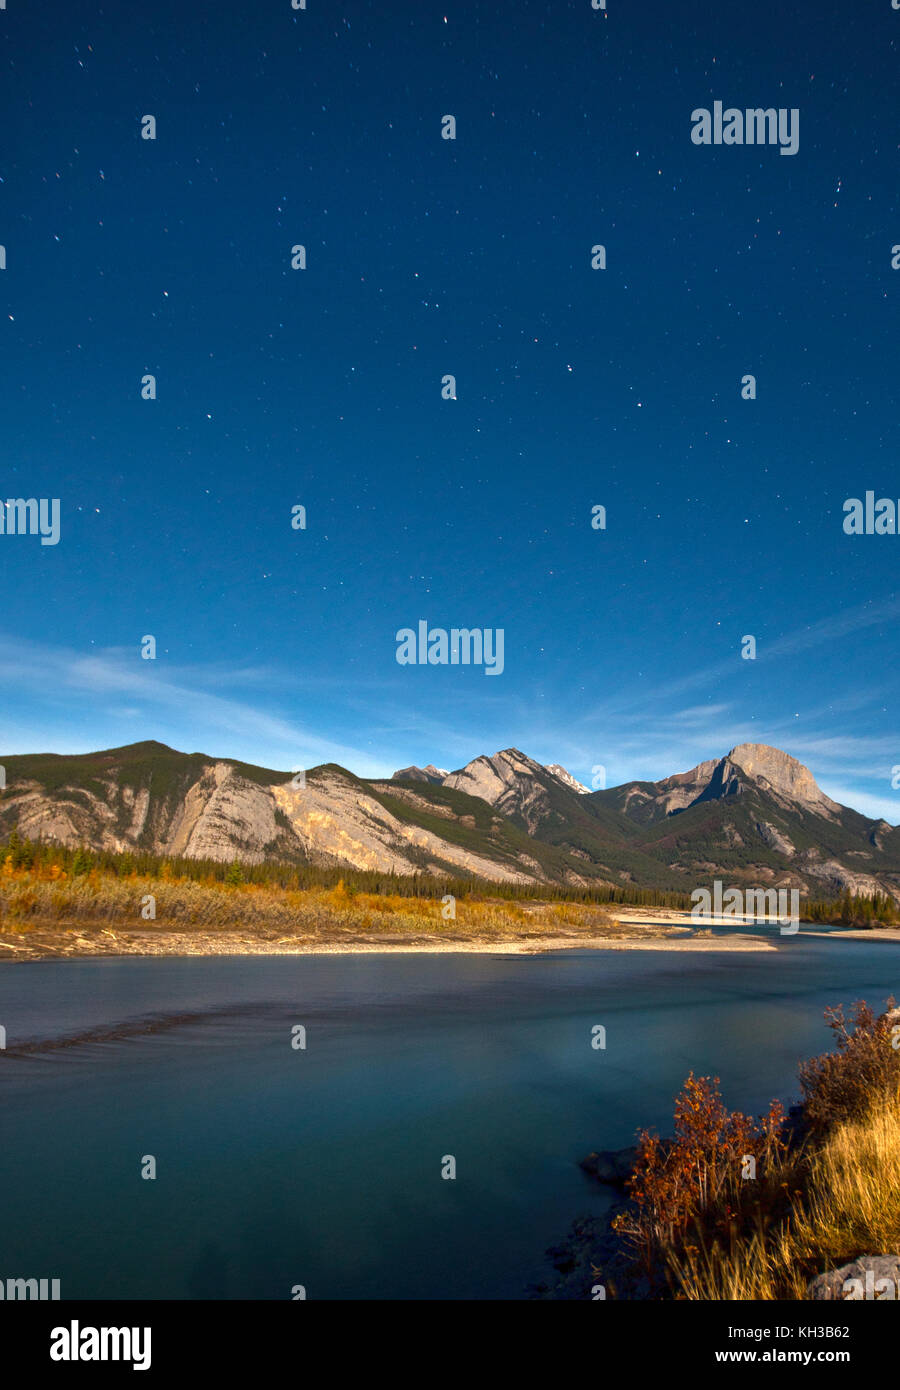 stars and constellations above the rocky mountains - Stock Image